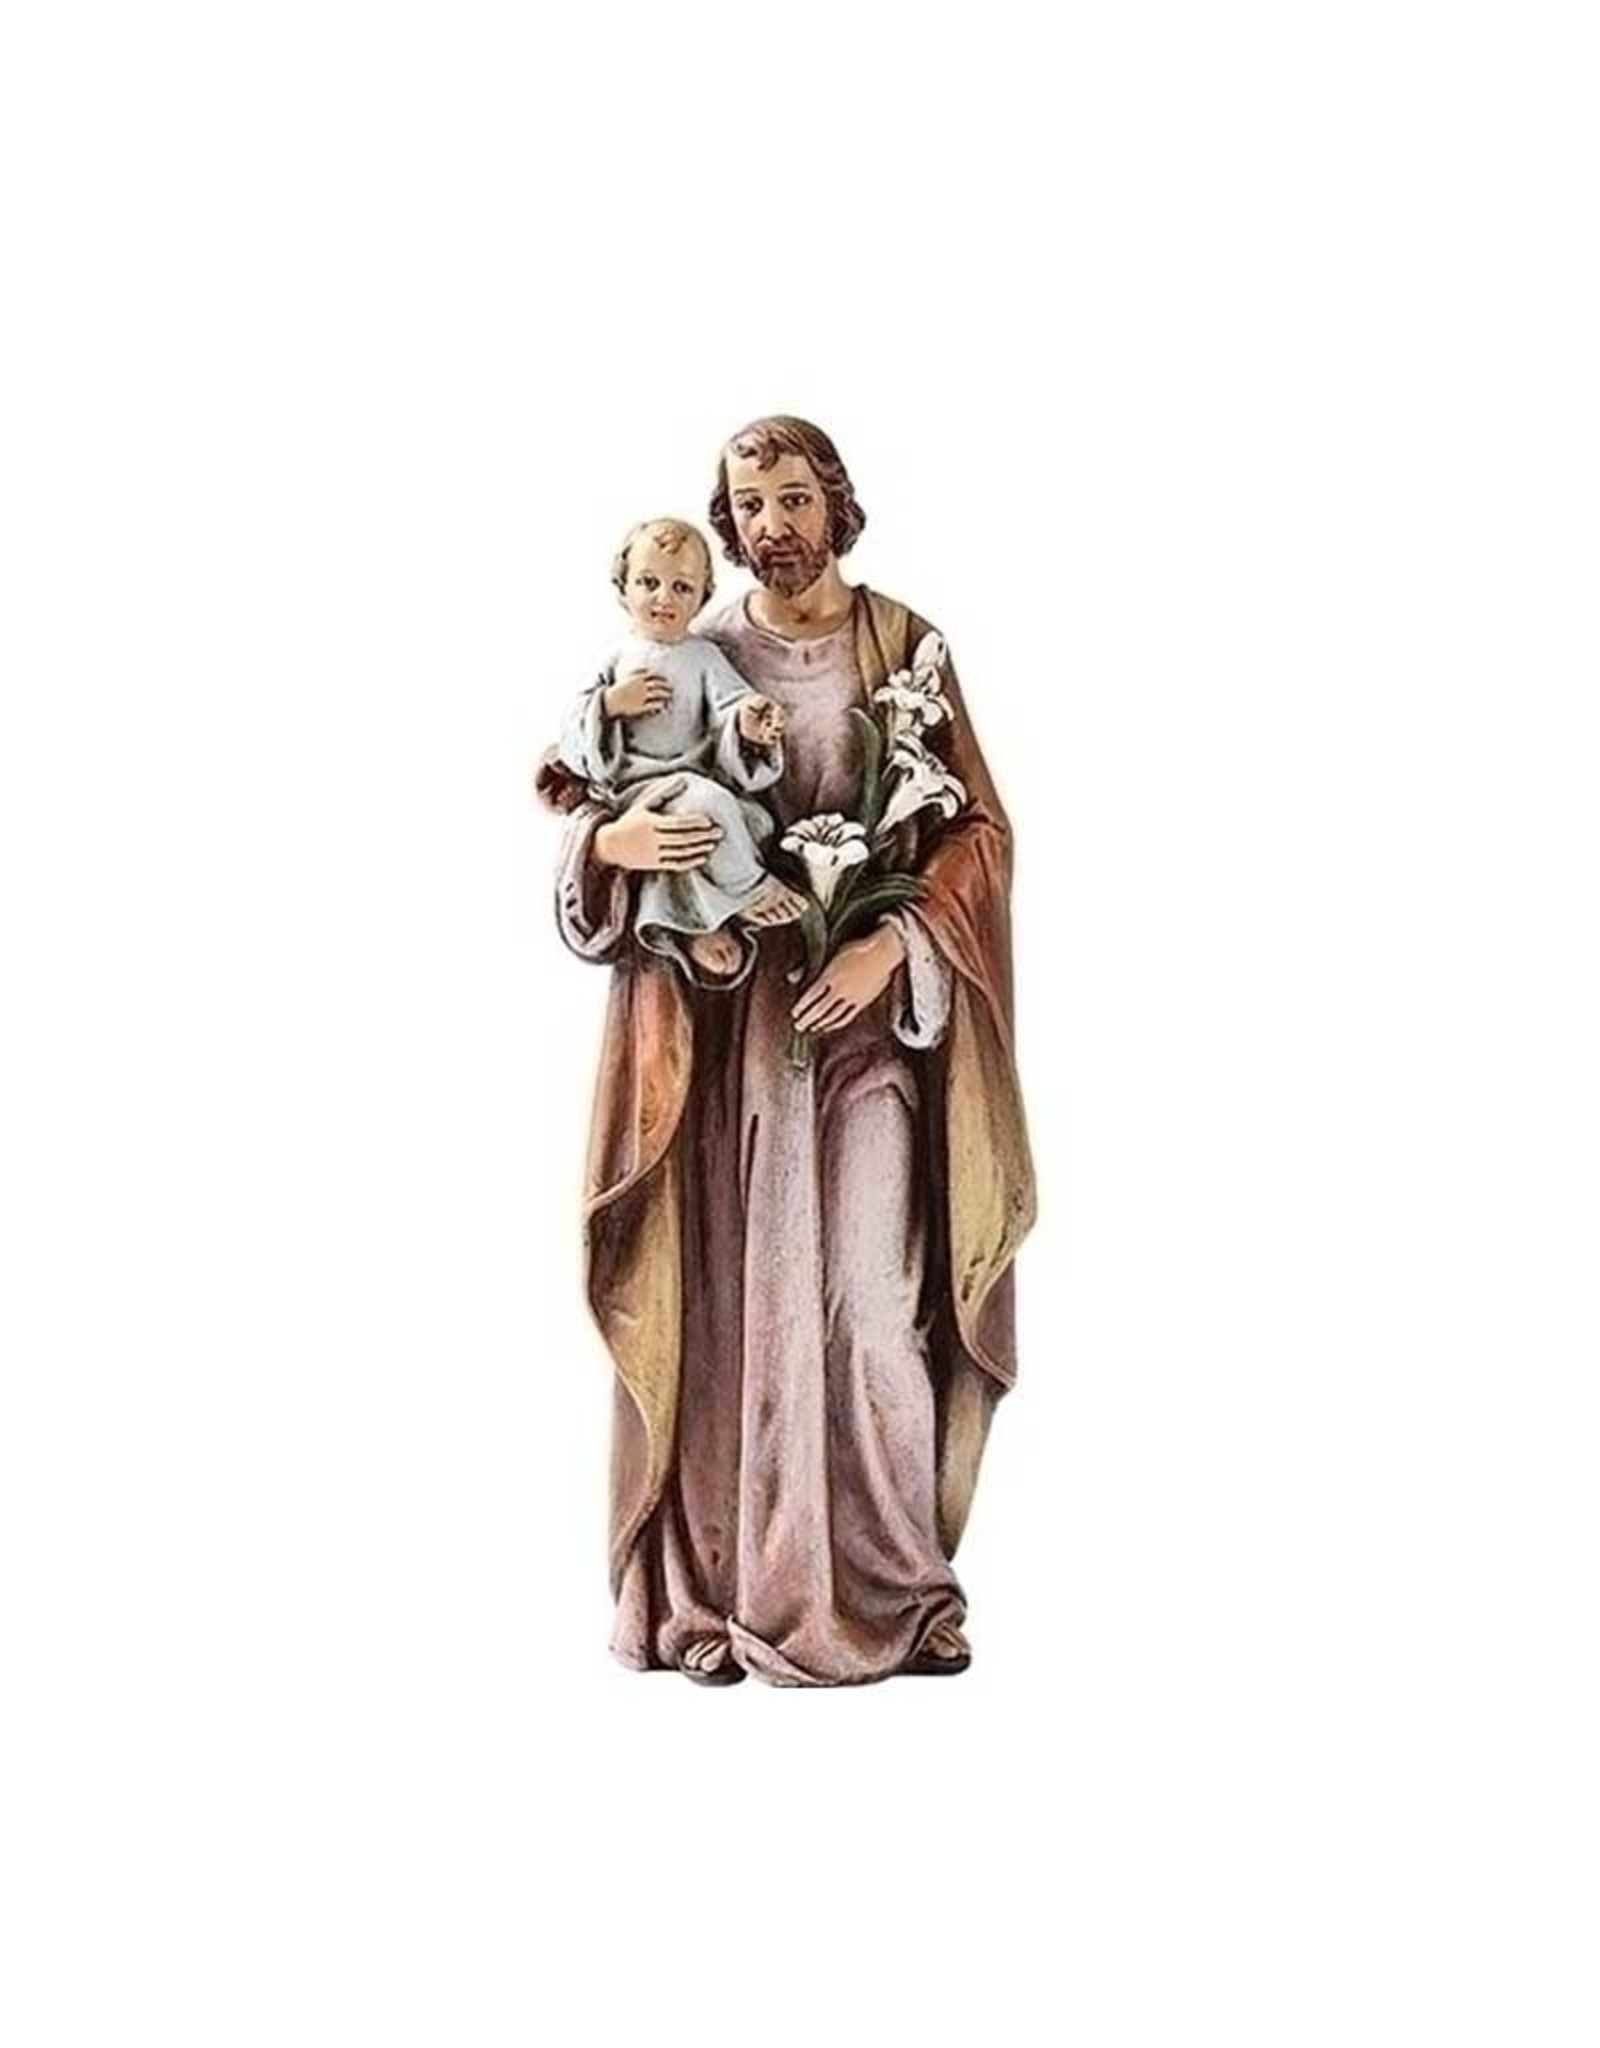 Joseph's Studio / Roman  Saint Joseph resin statue : lilac and brown color